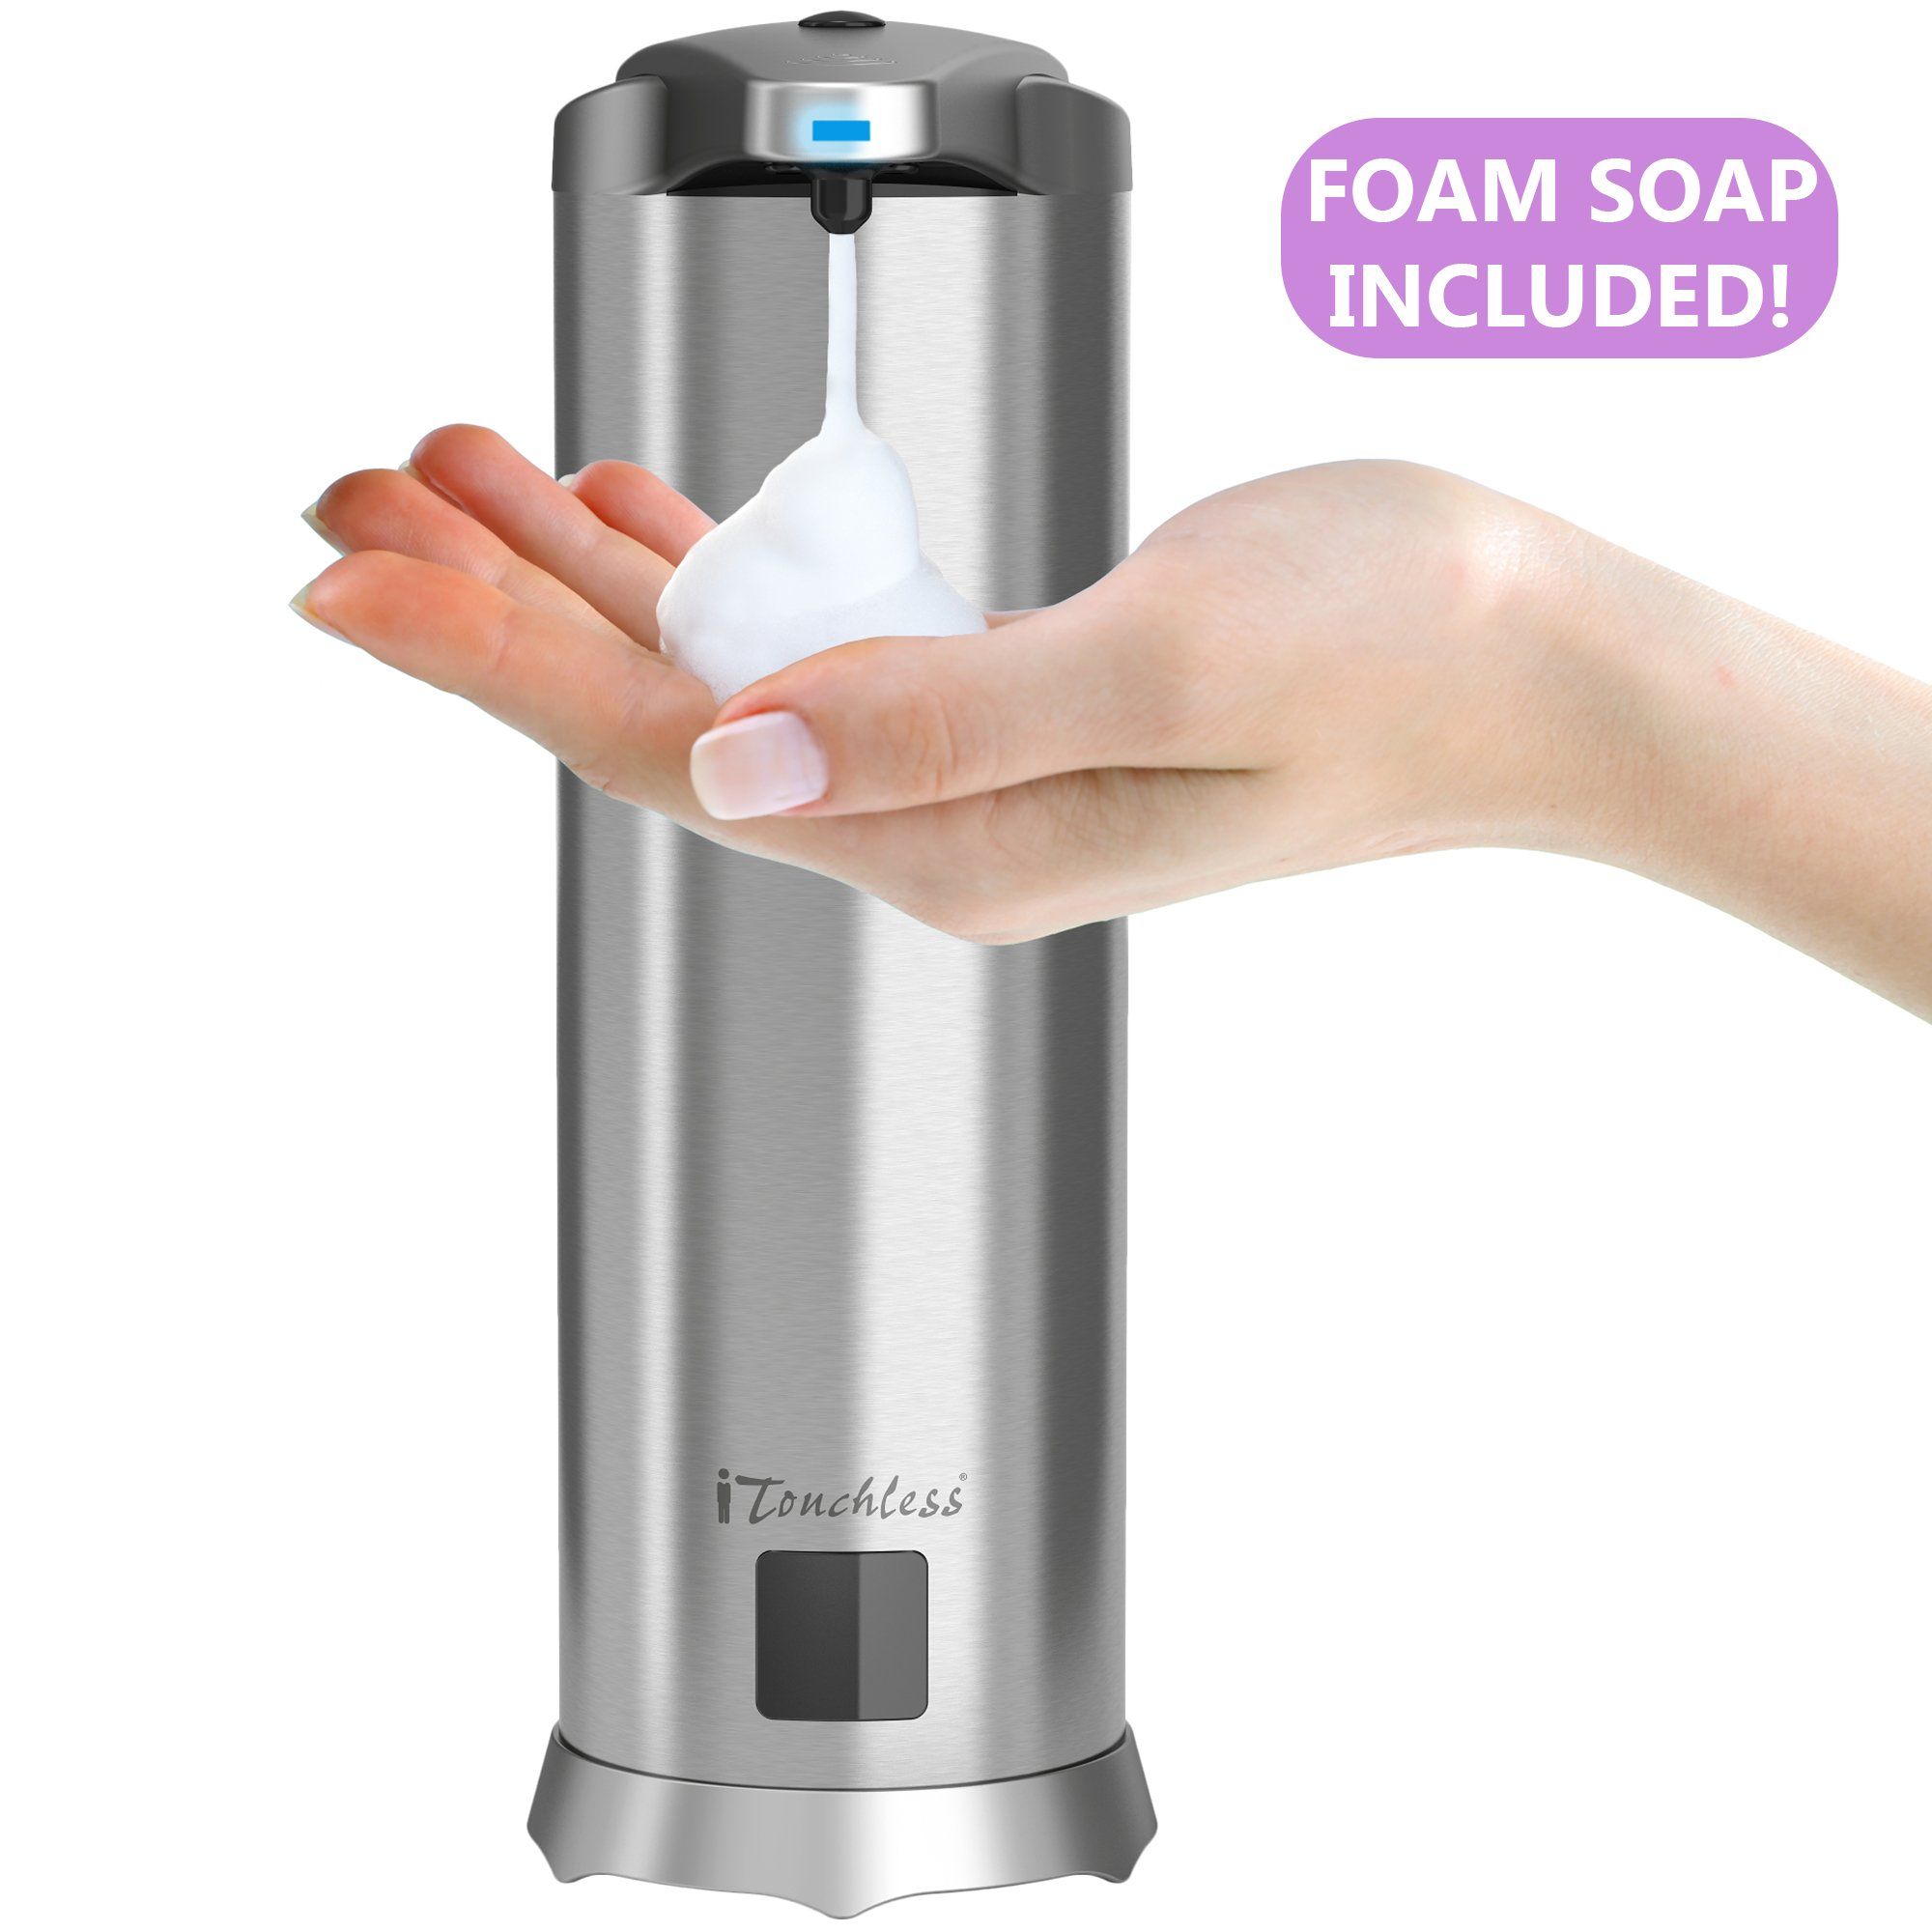 iTouchless UltraClean Automatic Foam Soap Dispenser, Rust-Free Stainless Steel Sensor Soap Dispenser with 28 FL OZ. Foam Soap Refills, Touch-Free Soap Pump for Bathroom and Kitchen